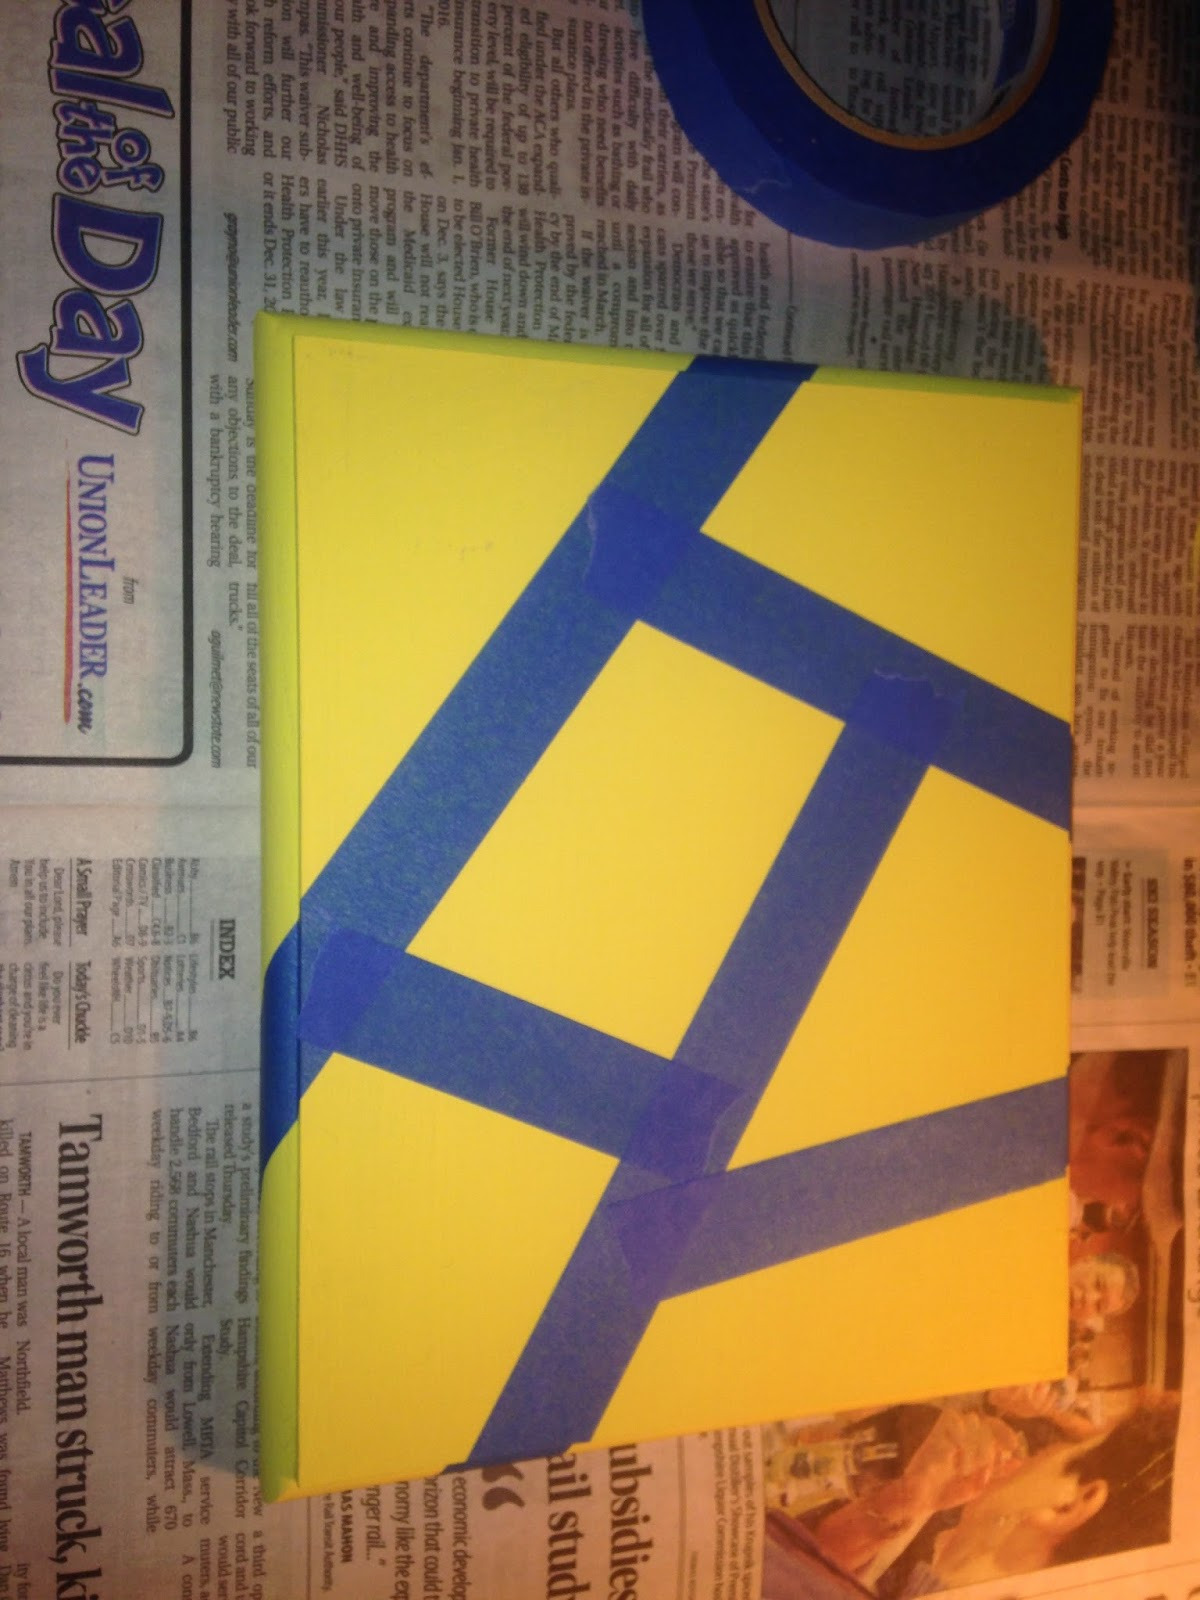 yellow block with blue painter's tape